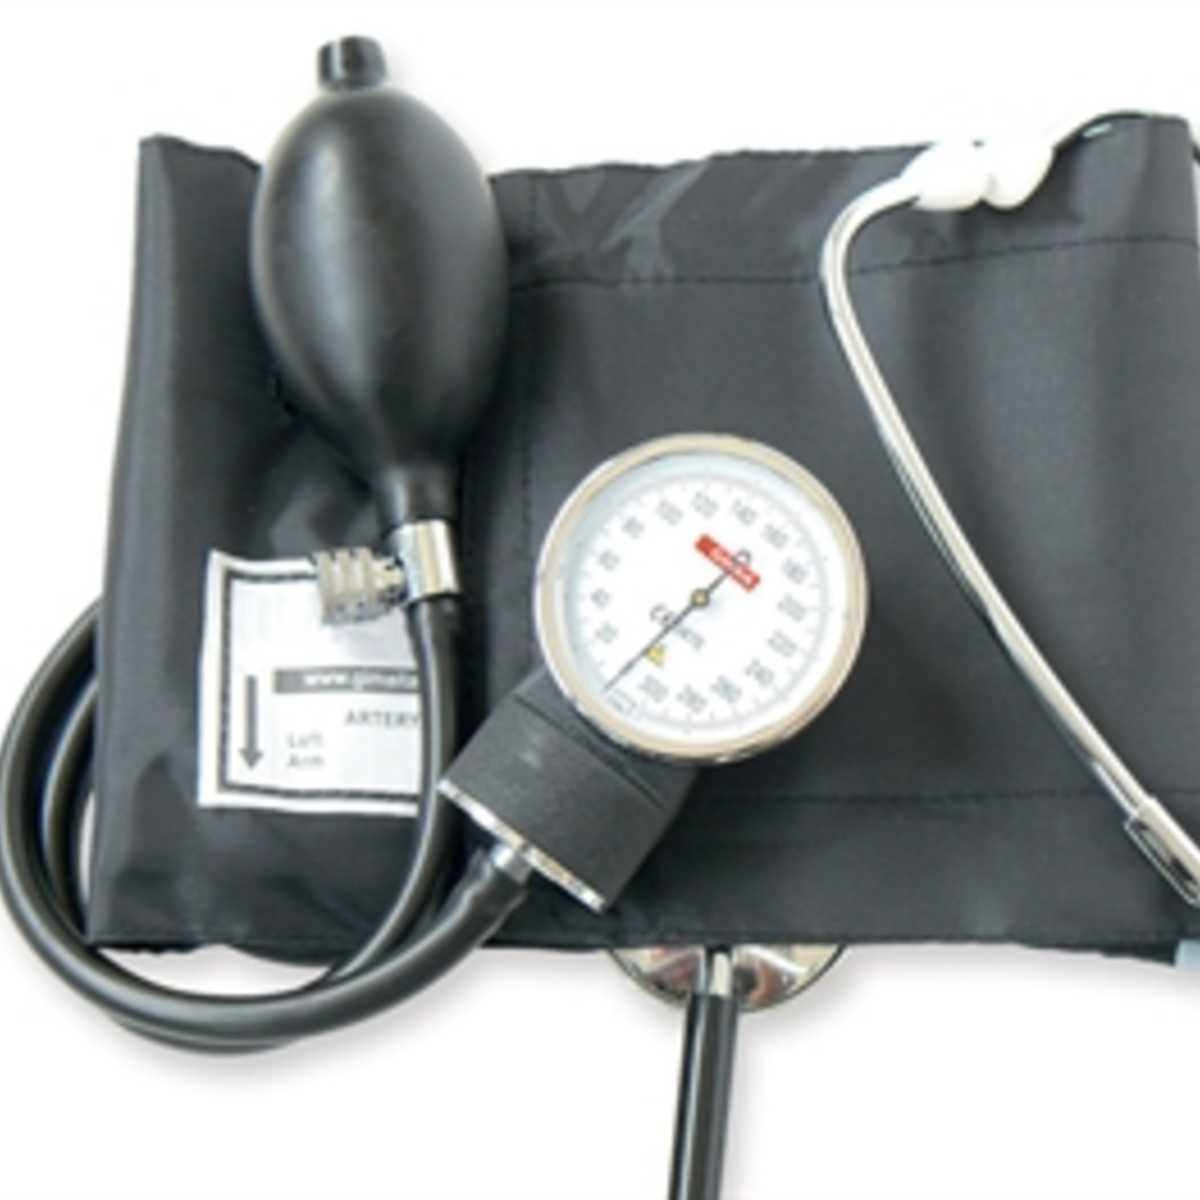 Aneroid Bp Monitor With Stethoscope